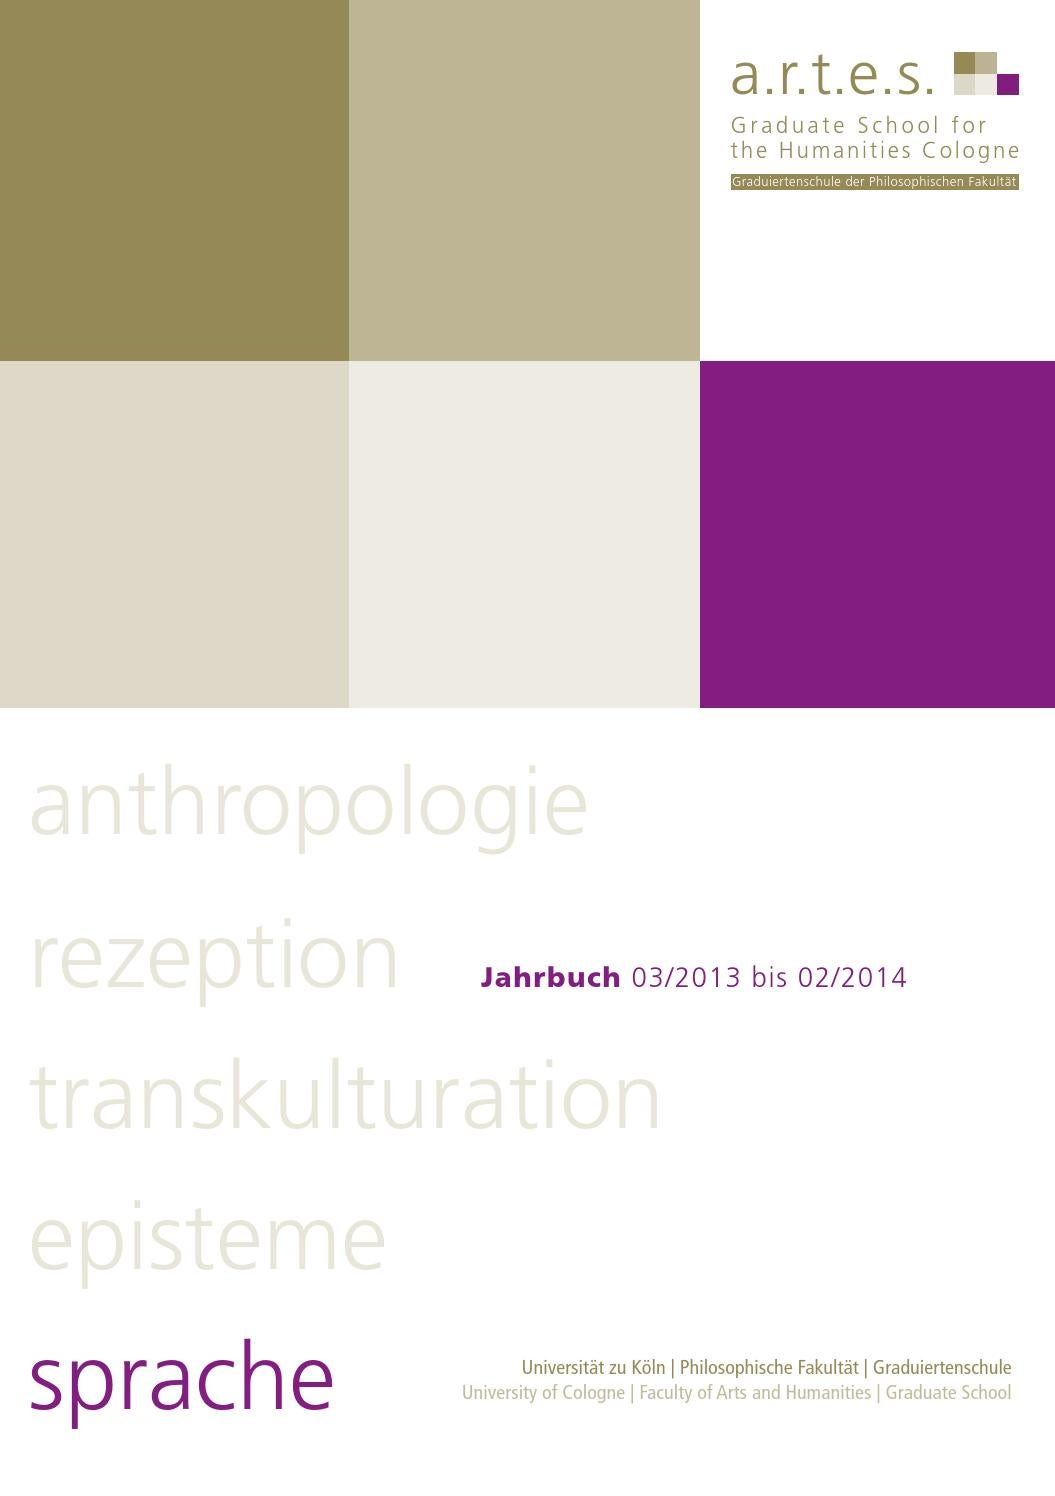 Jahrbuch der a.r.t.e.s. Graduate School for the Humanities Cologne ...